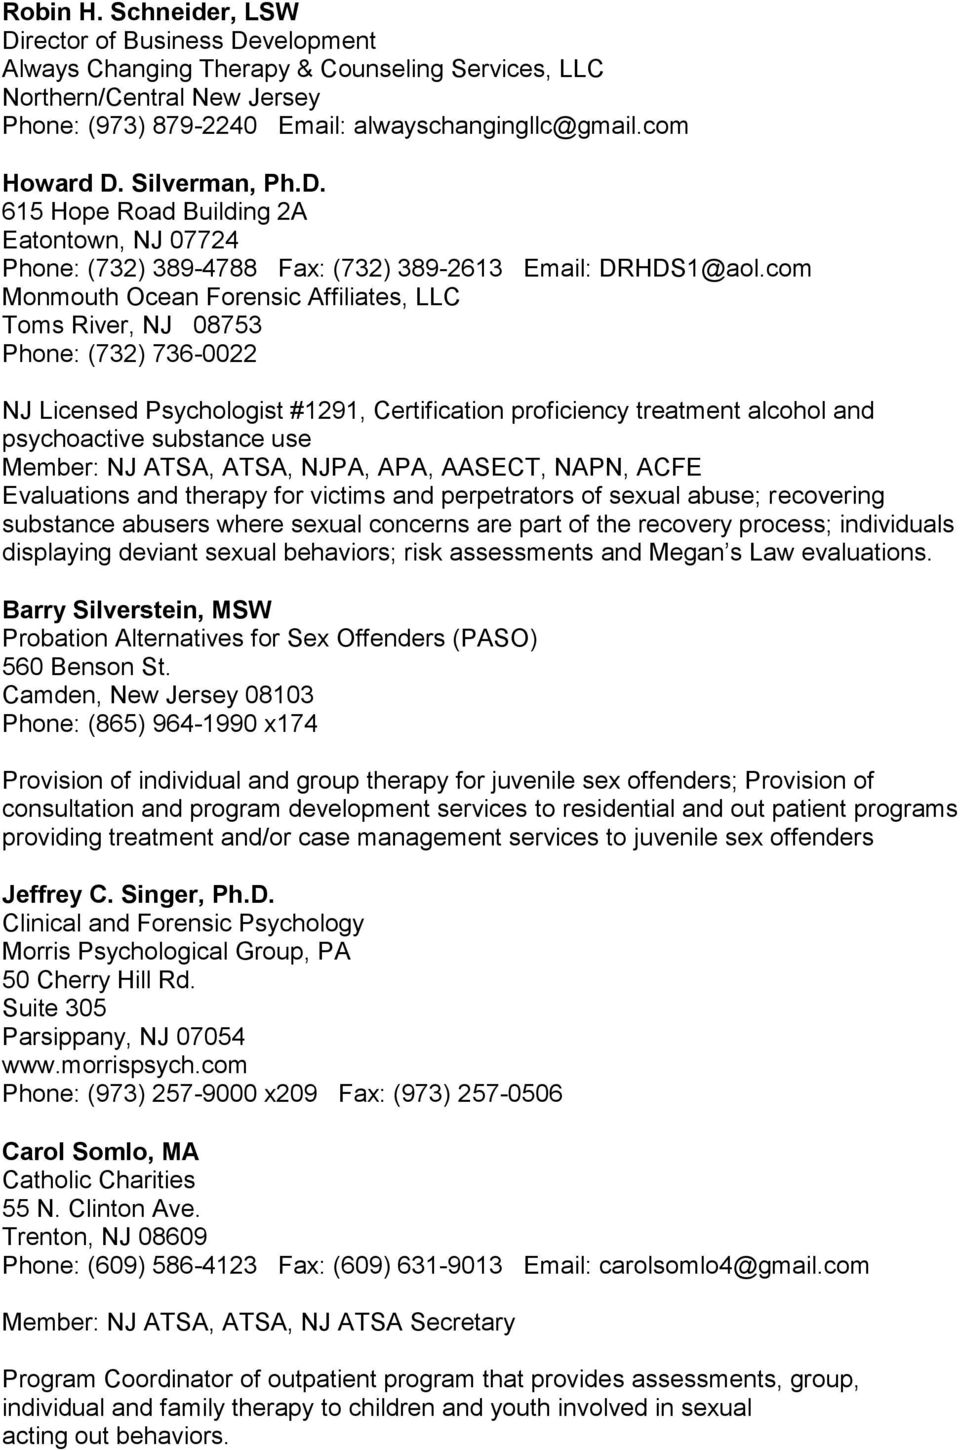 com Monmouth Ocean Forensic Affiliates, LLC Toms River, NJ 08753 Phone: (732) 736-0022 NJ Licensed Psychologist #1291, Certification proficiency treatment alcohol and psychoactive substance use